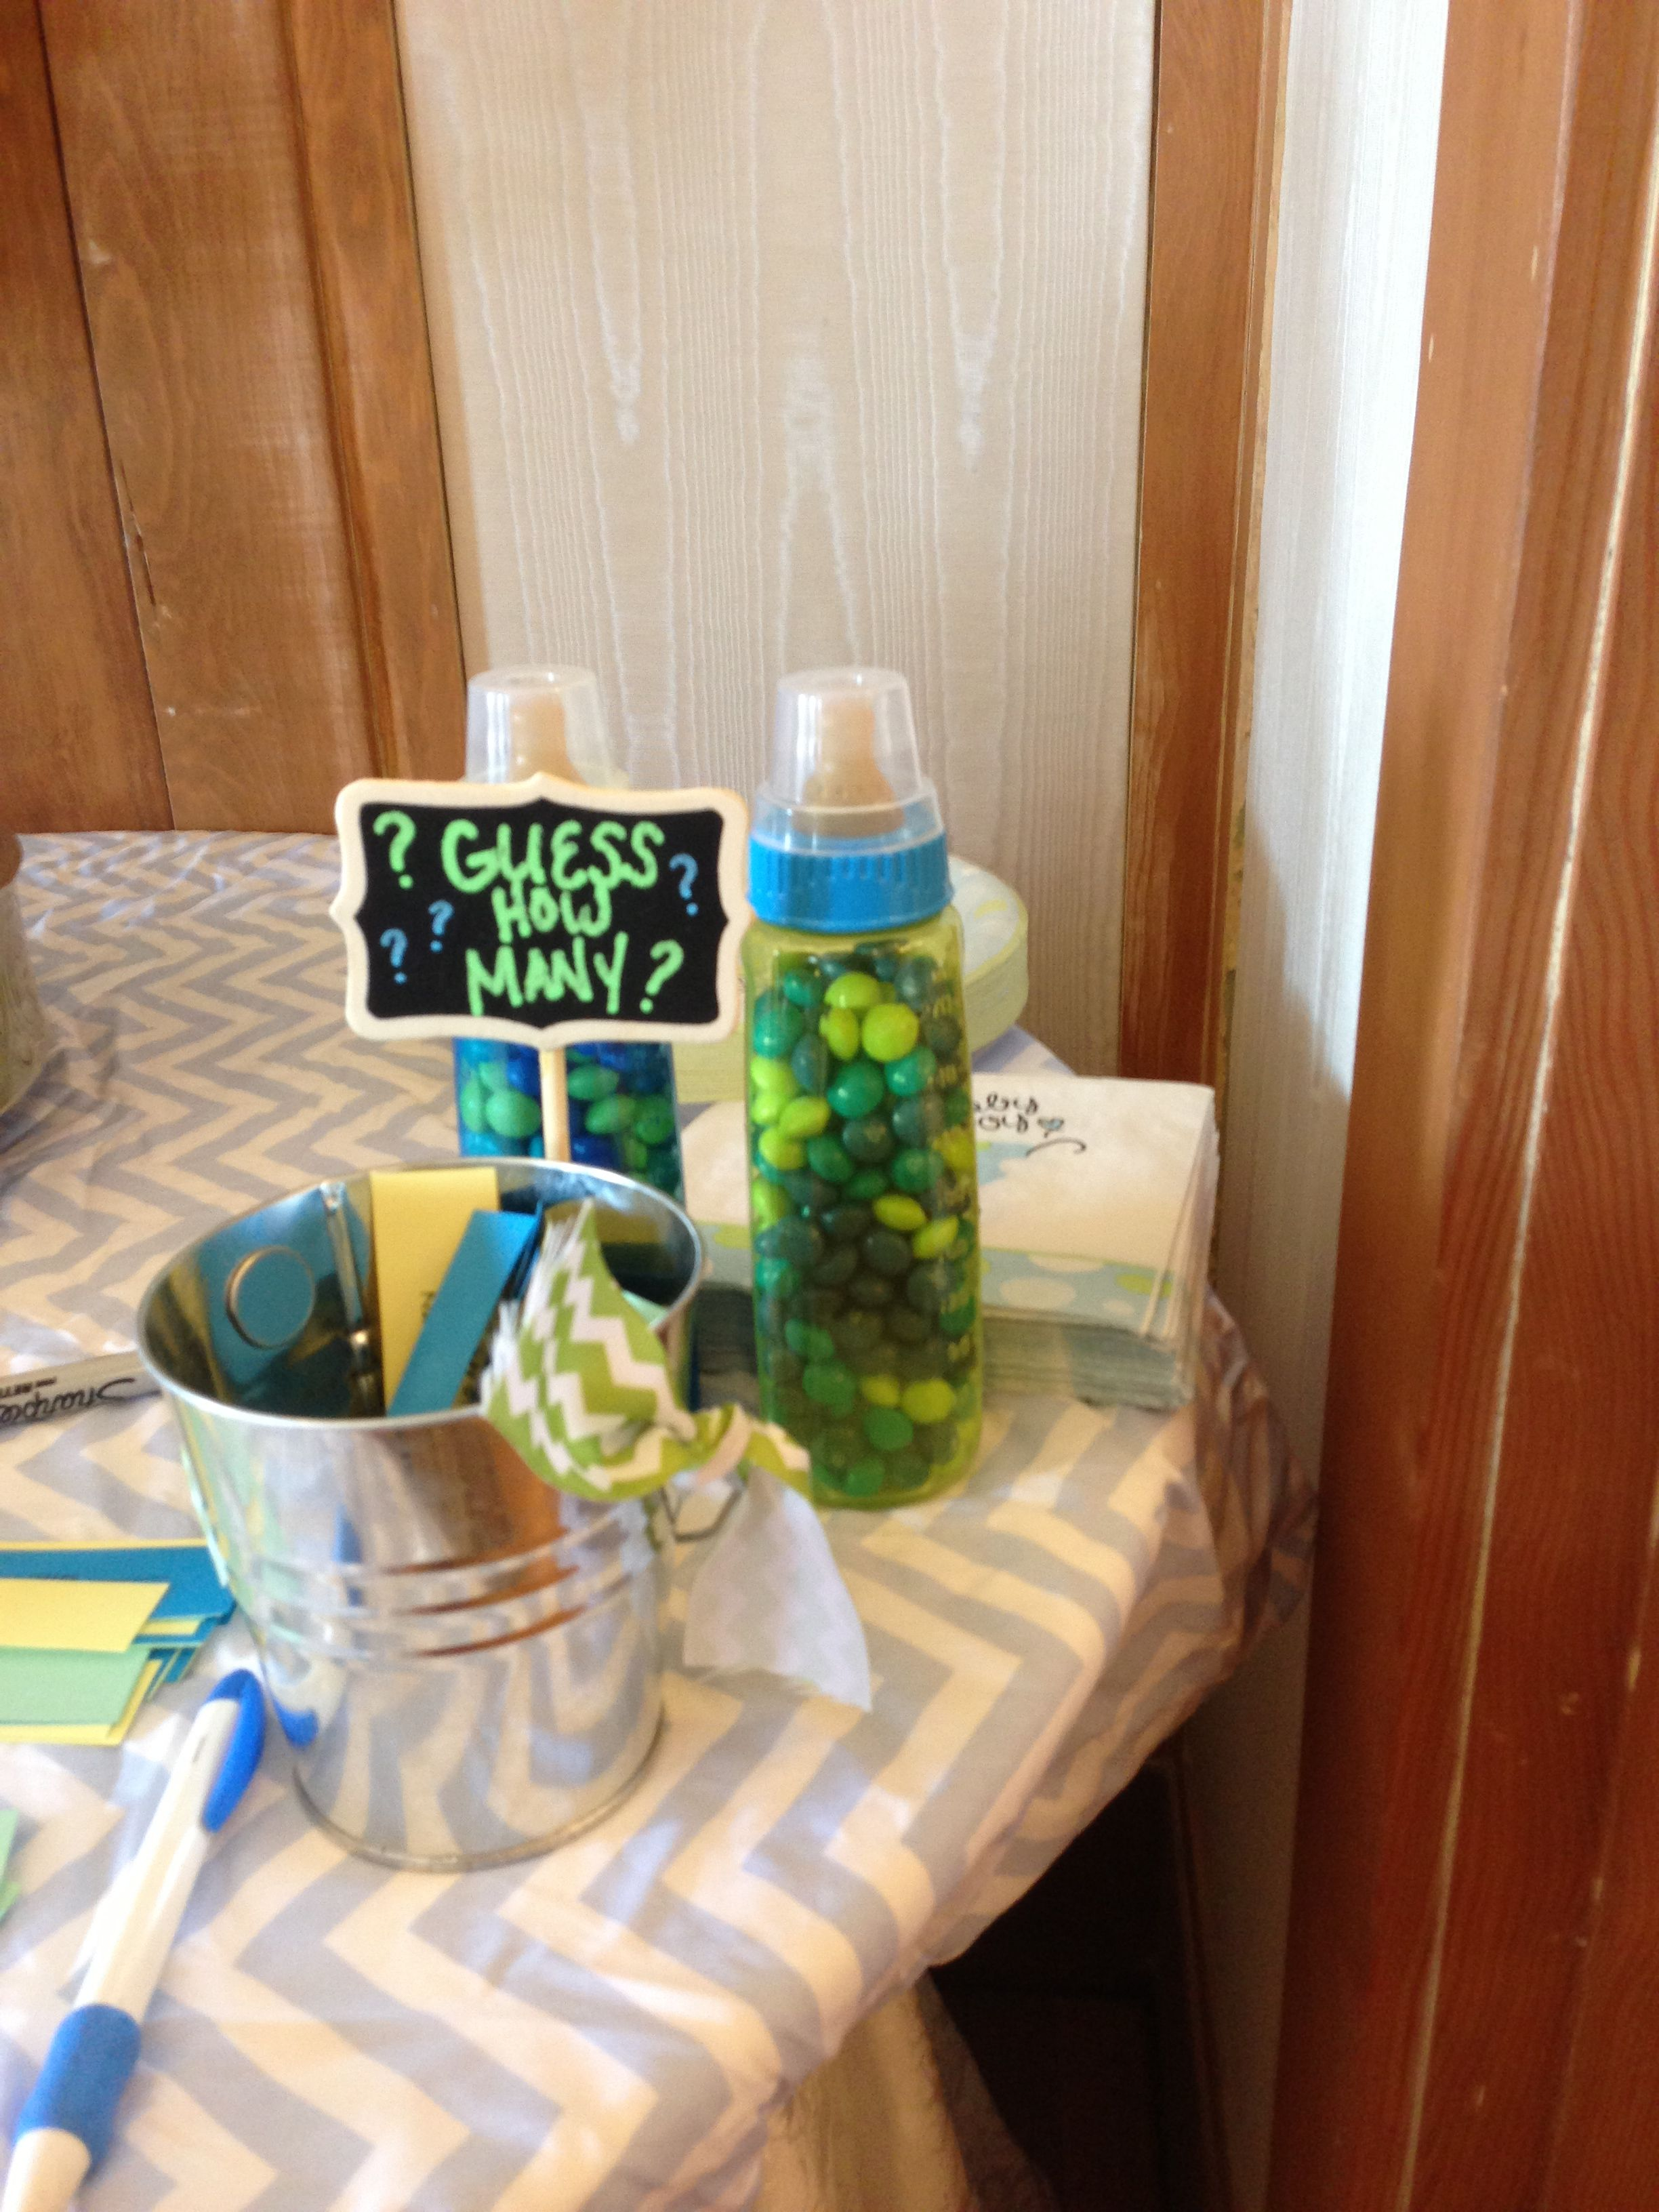 Baby Shower Guess How Many Socks In The Jar Template : shower, guess, socks, template, Guess, Shower, Games,